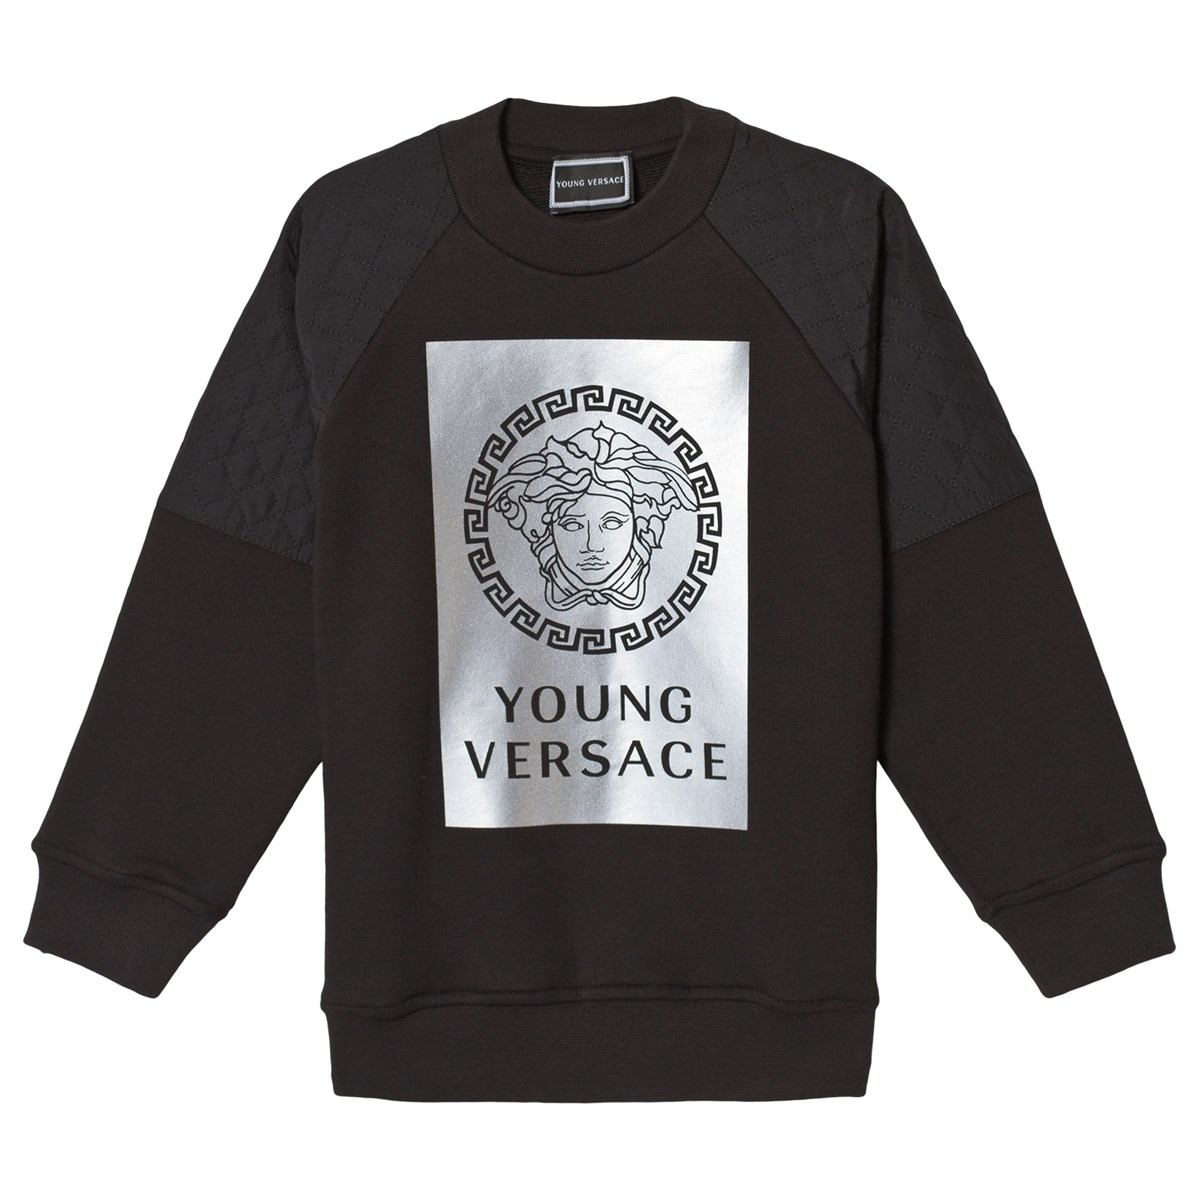 Young Versace Baby White Stroller And Travel Set Versace Black Reflective Medusa Print Sweatshirt